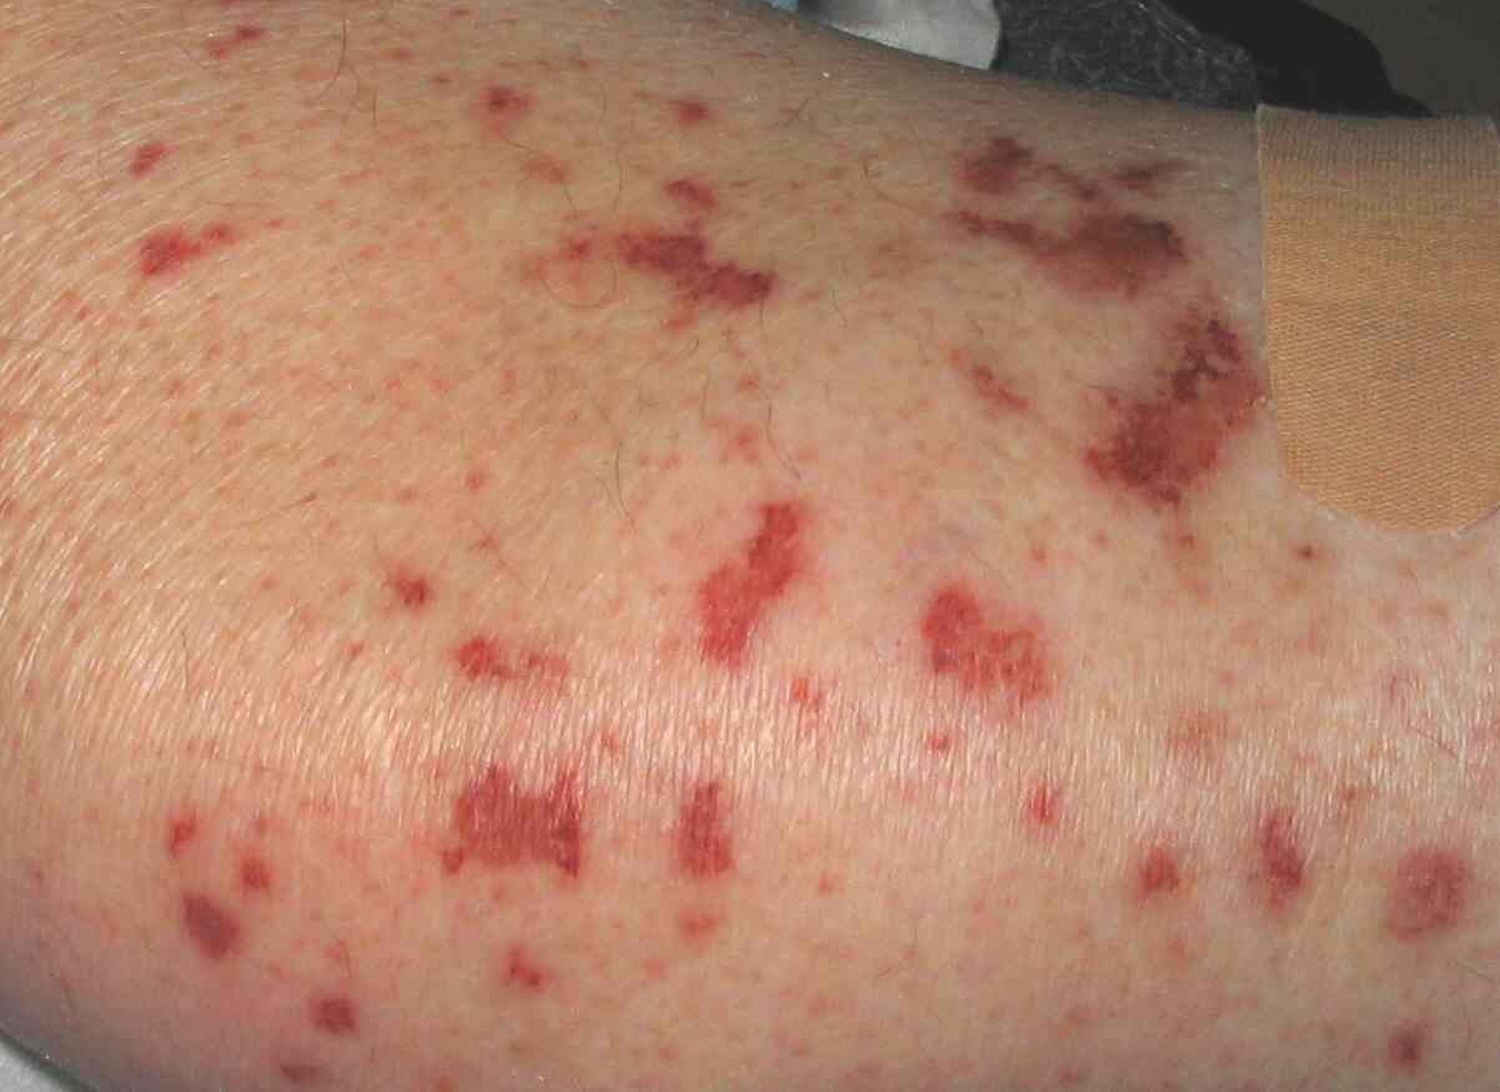 Churg Strauss syndrome skin rash - eosinophilic phase